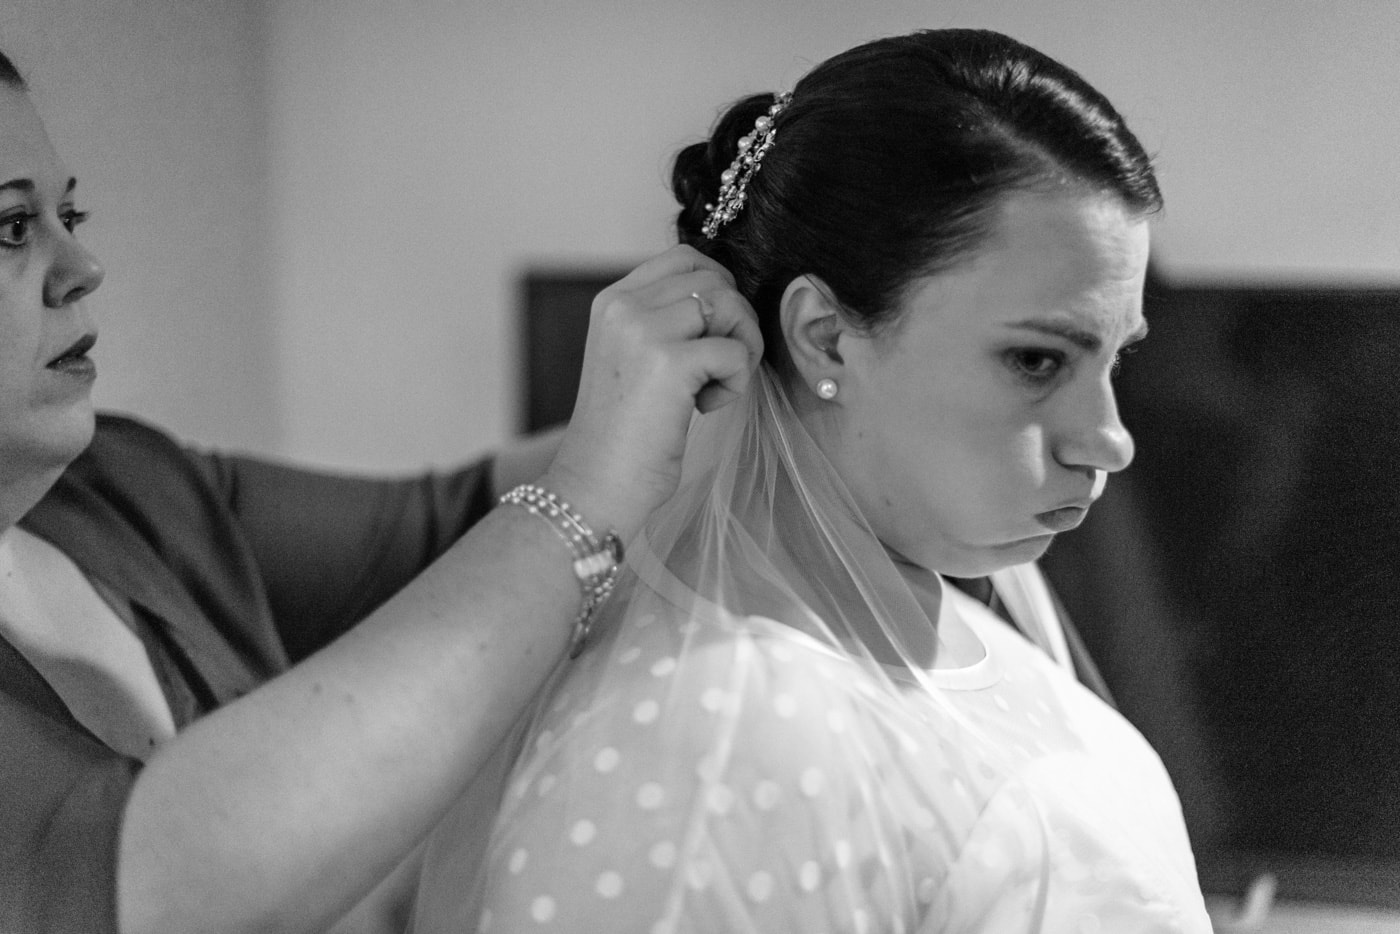 A bridesmaid pins the veil on to the bride as they get ready in fairfax, virginia